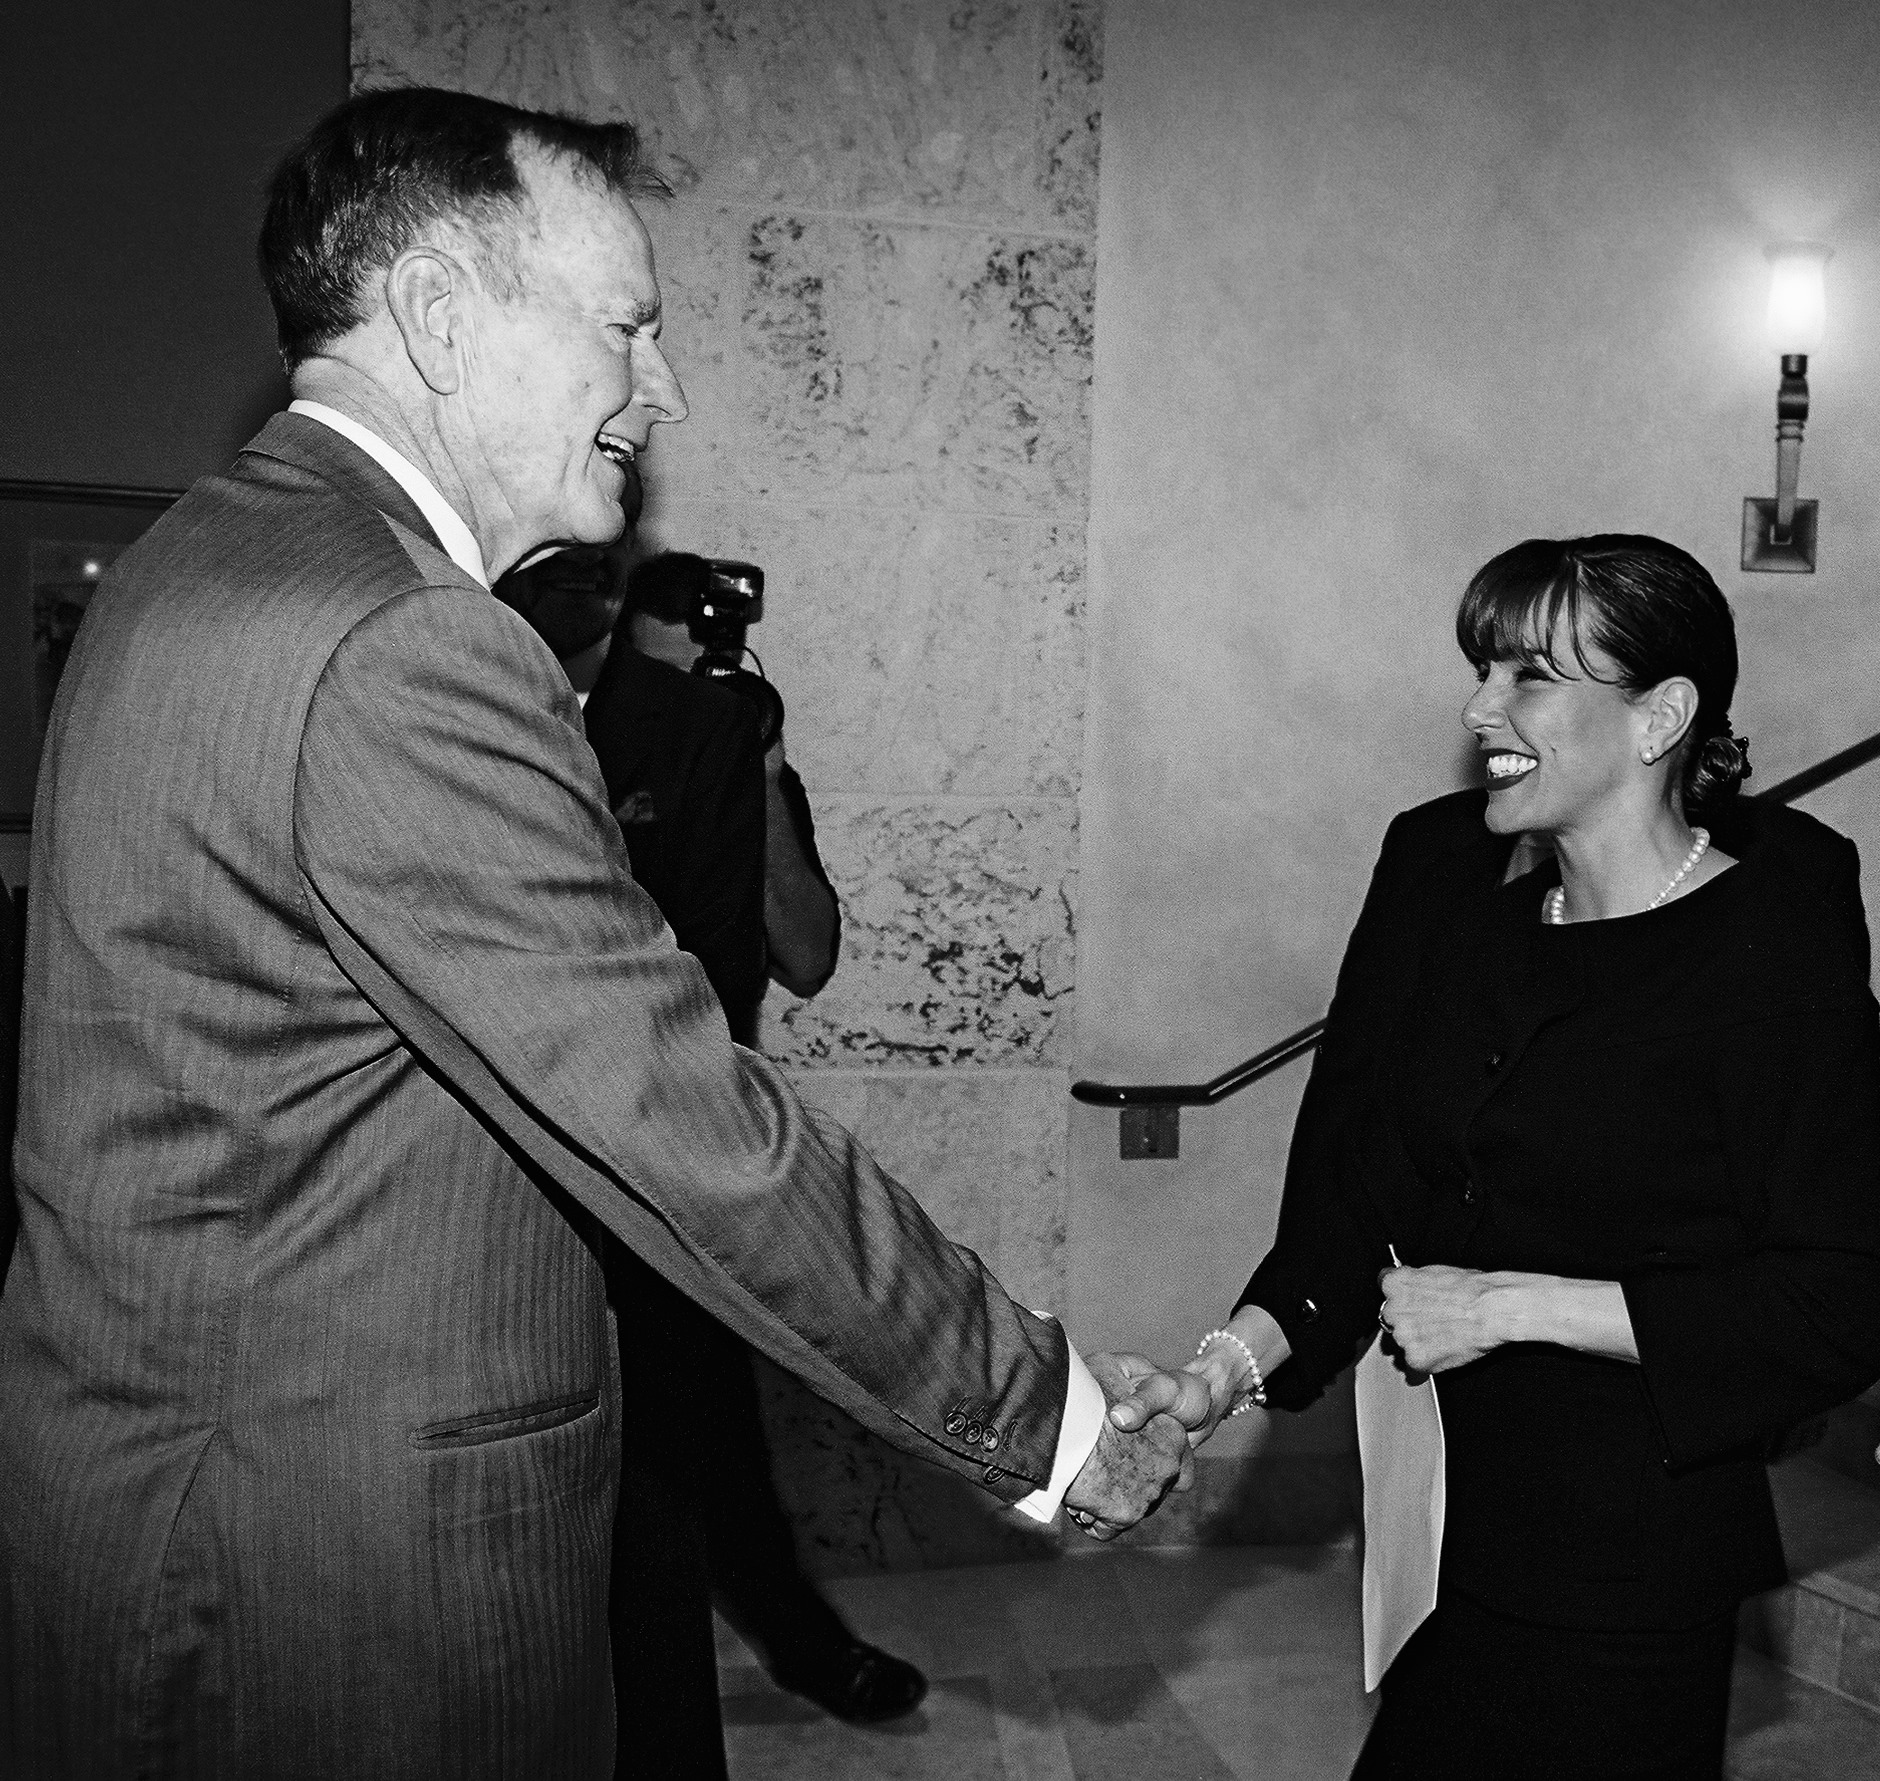 Arely Ruiz with George W. Bush at one of the events she organized.